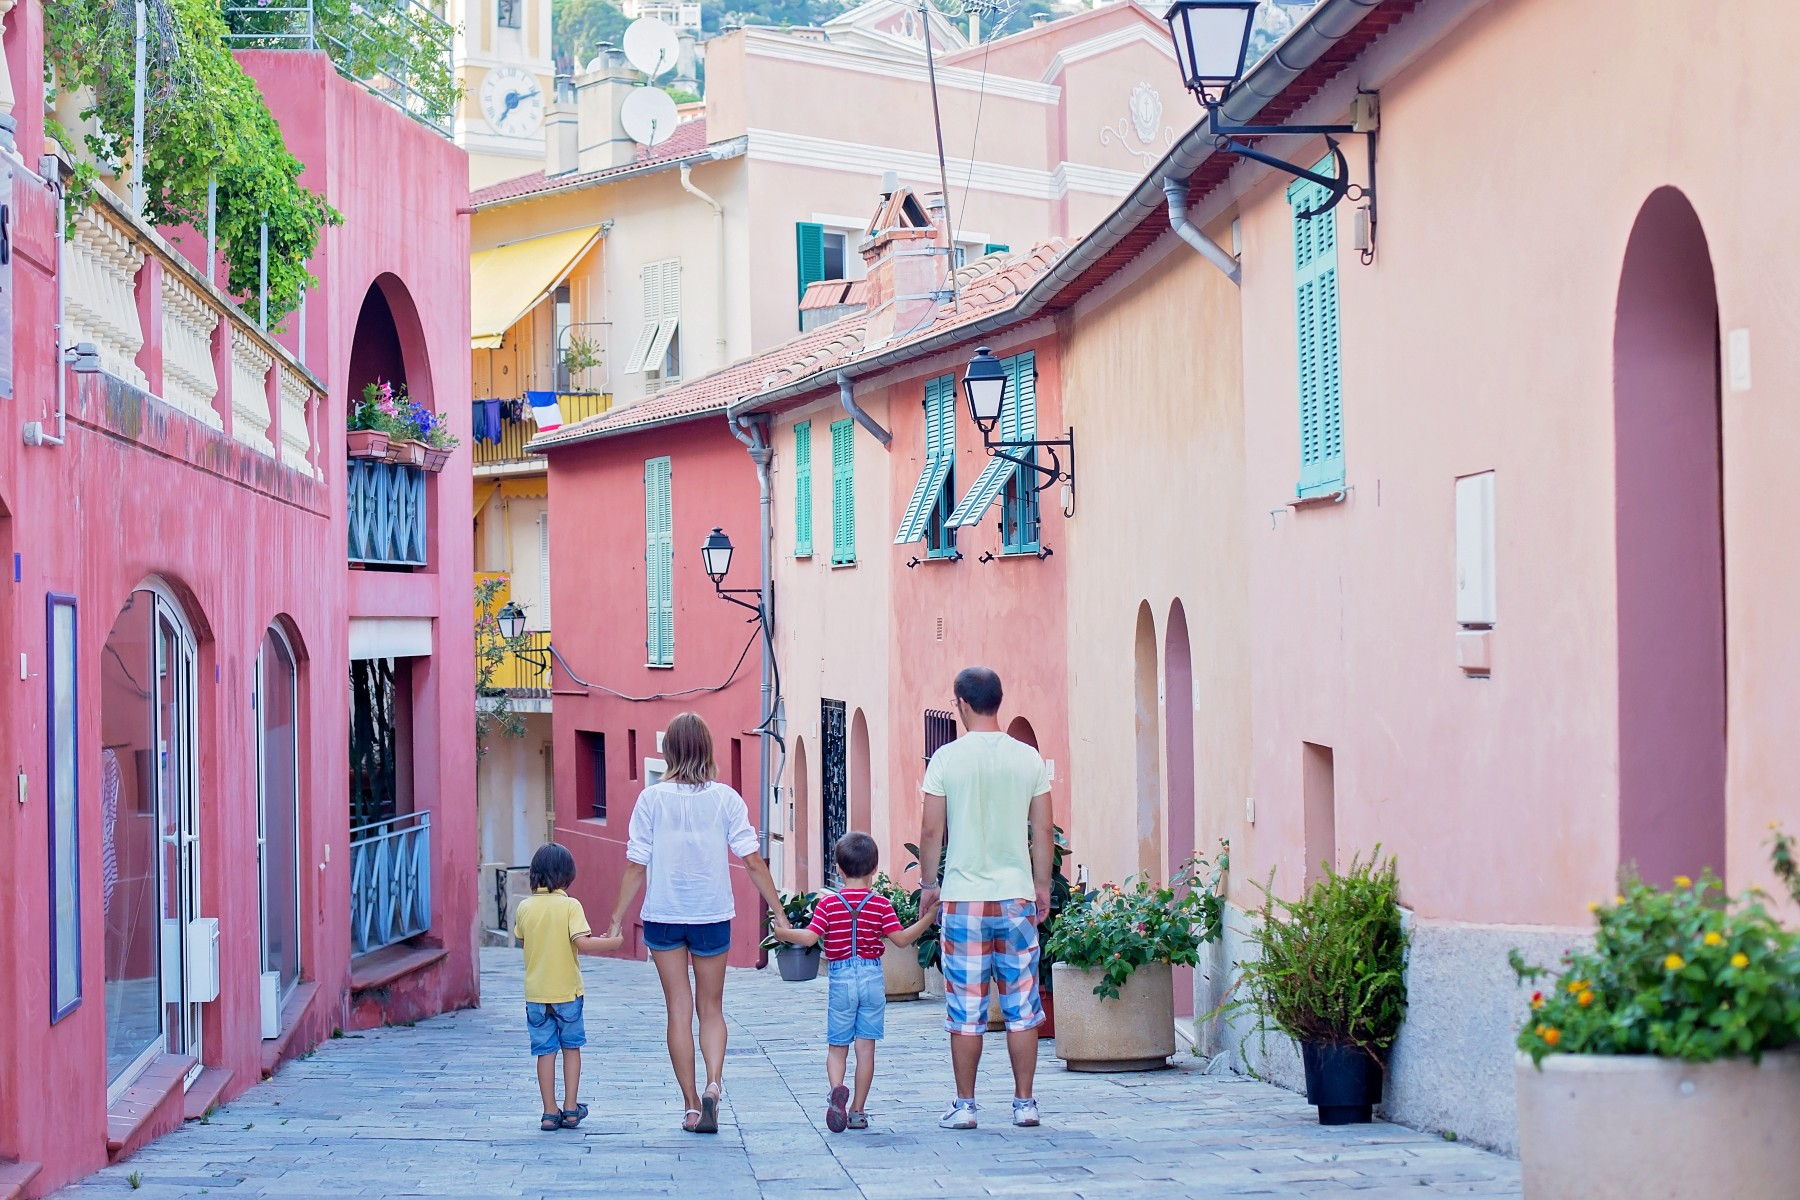 Family walking through a city center in France